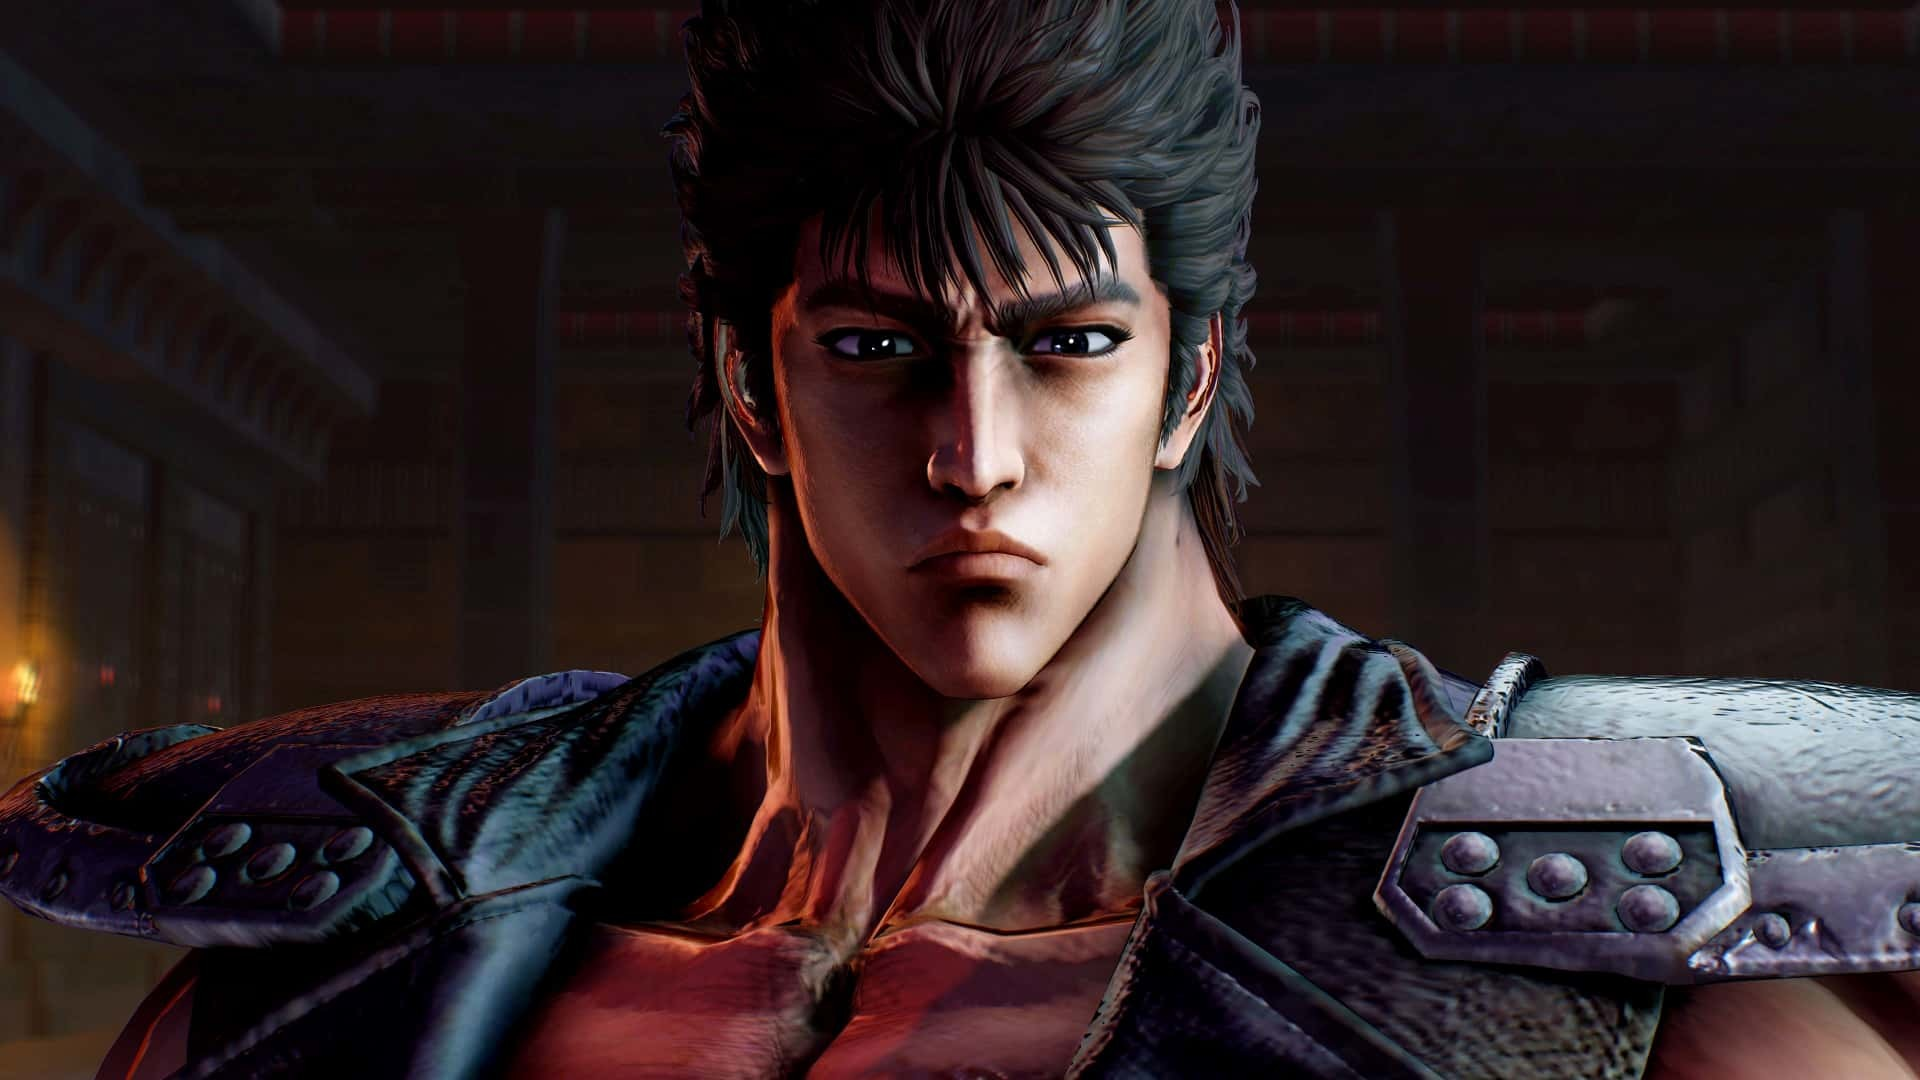 Fist Of The North Star Lost Paradise Might Be The Next Great 1920x1080